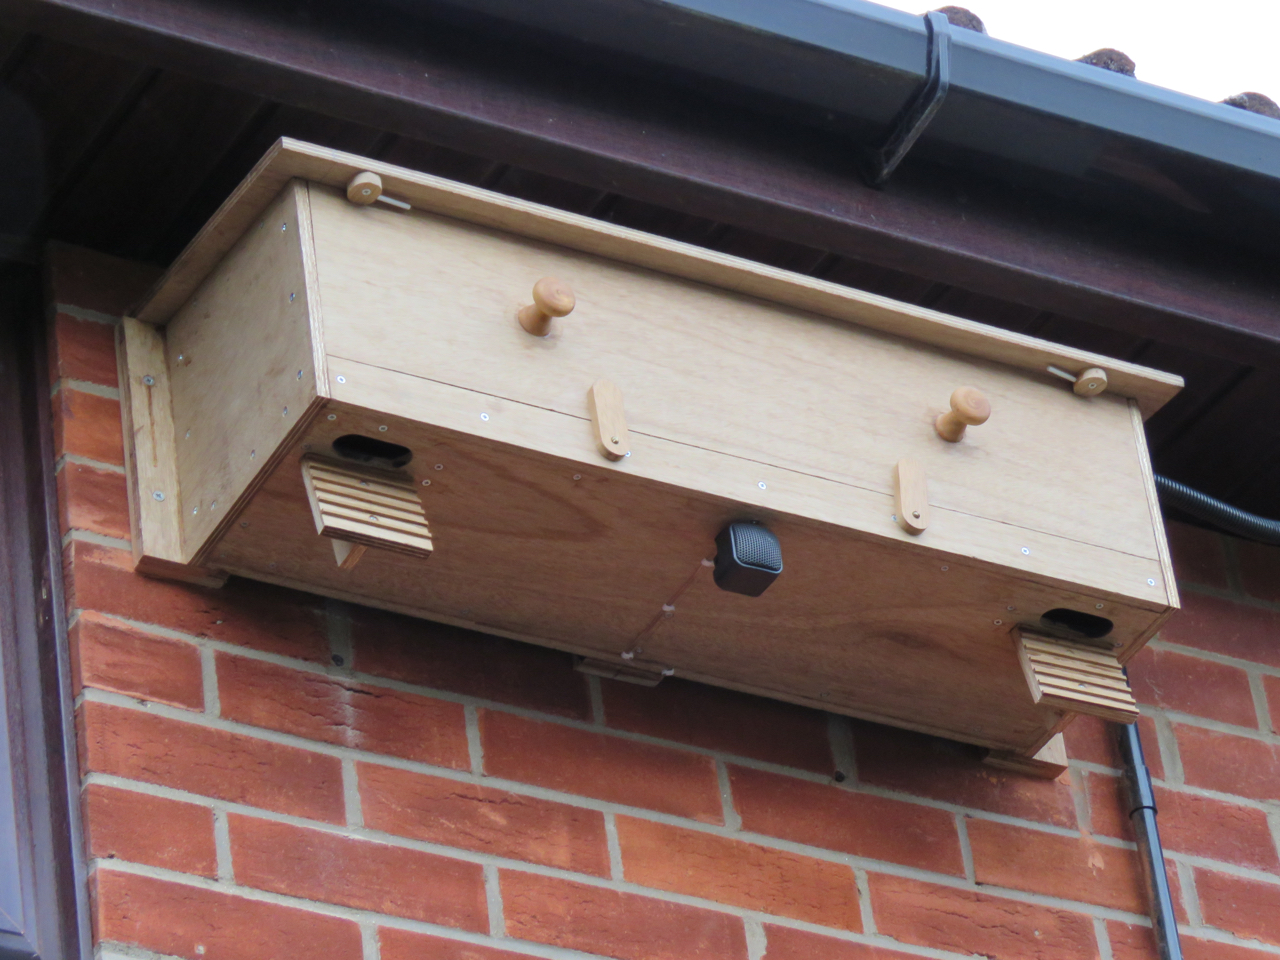 The Swift Nestbox in place.